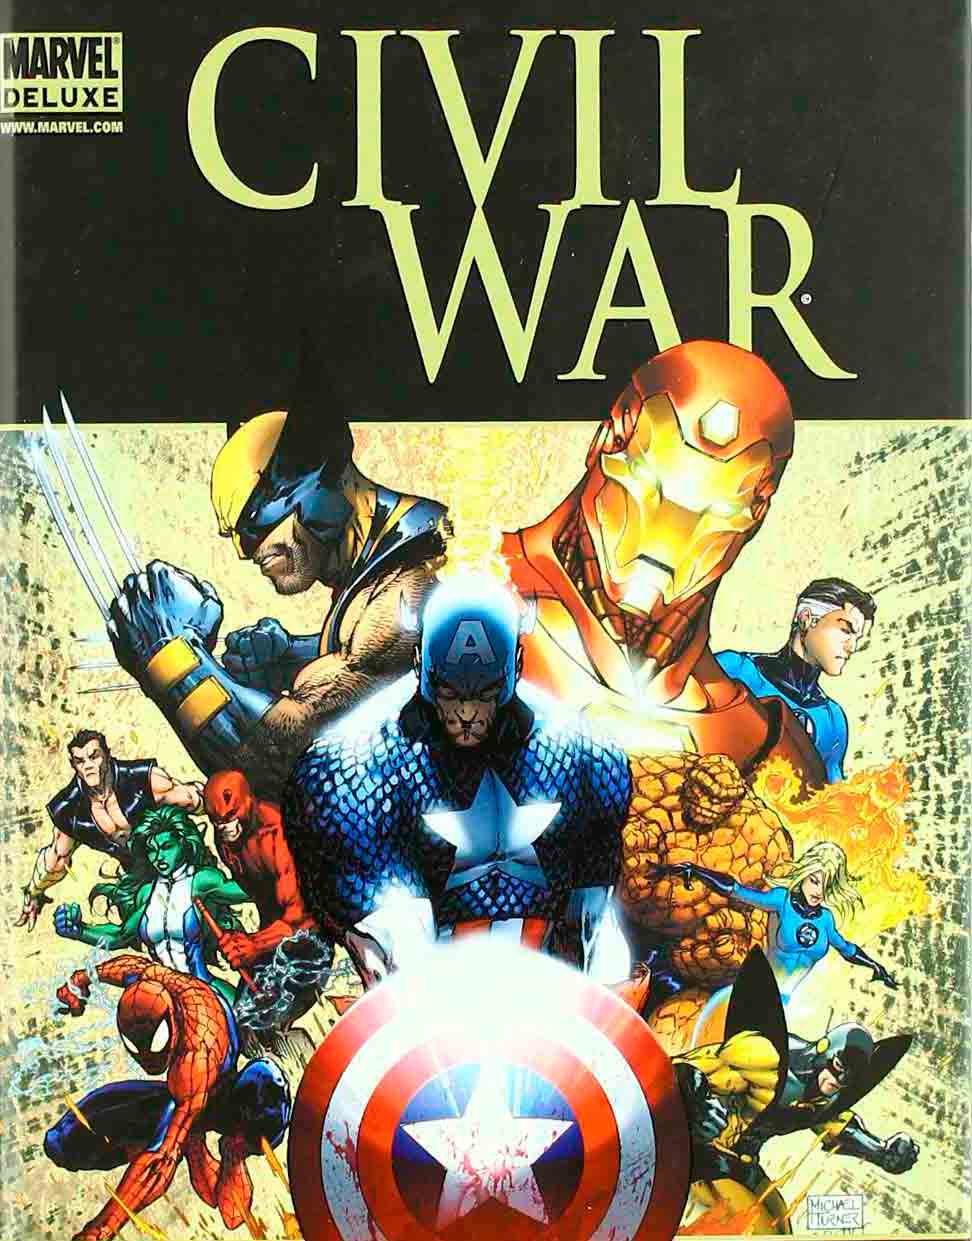 Los superhéroes están en guerra: 'Civil War', de Mark Millar y Steve McNiven